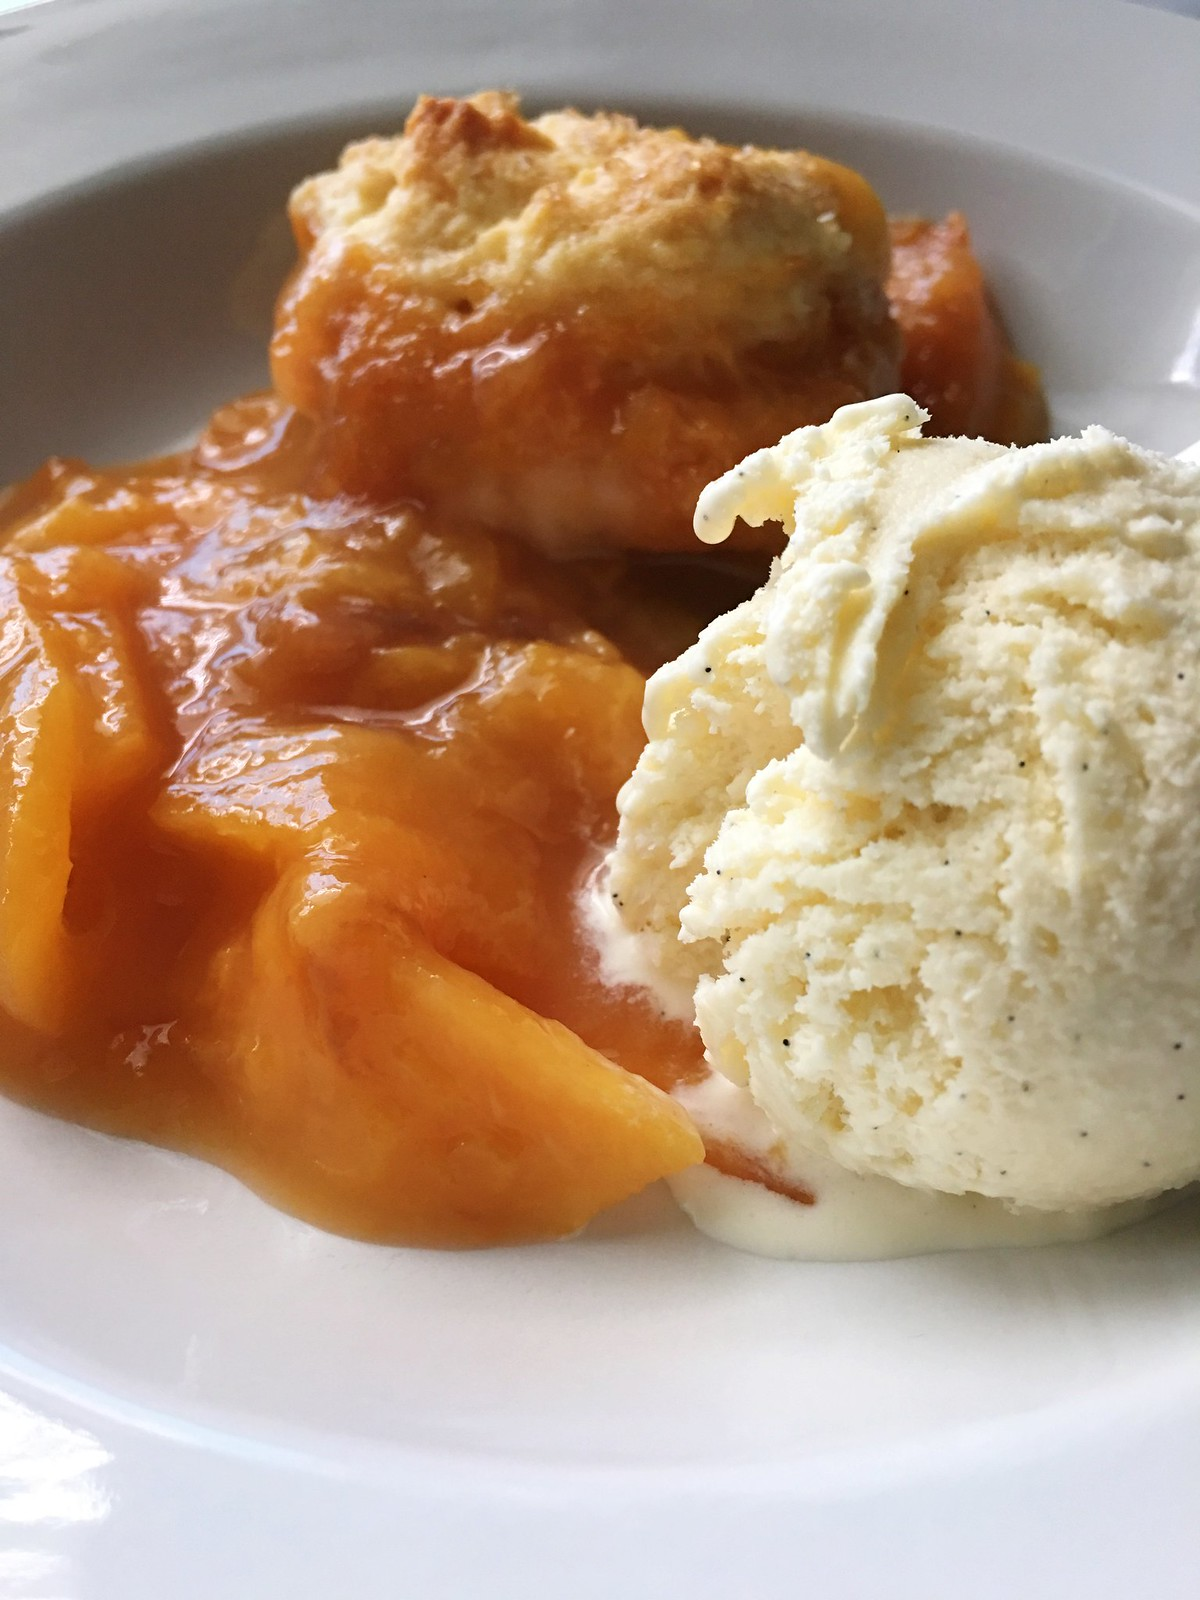 Old Fashioned Peach Cobbler from Kitchen in the Hills. This is a classic southern recipe that's simple to make and perfectly delicious!